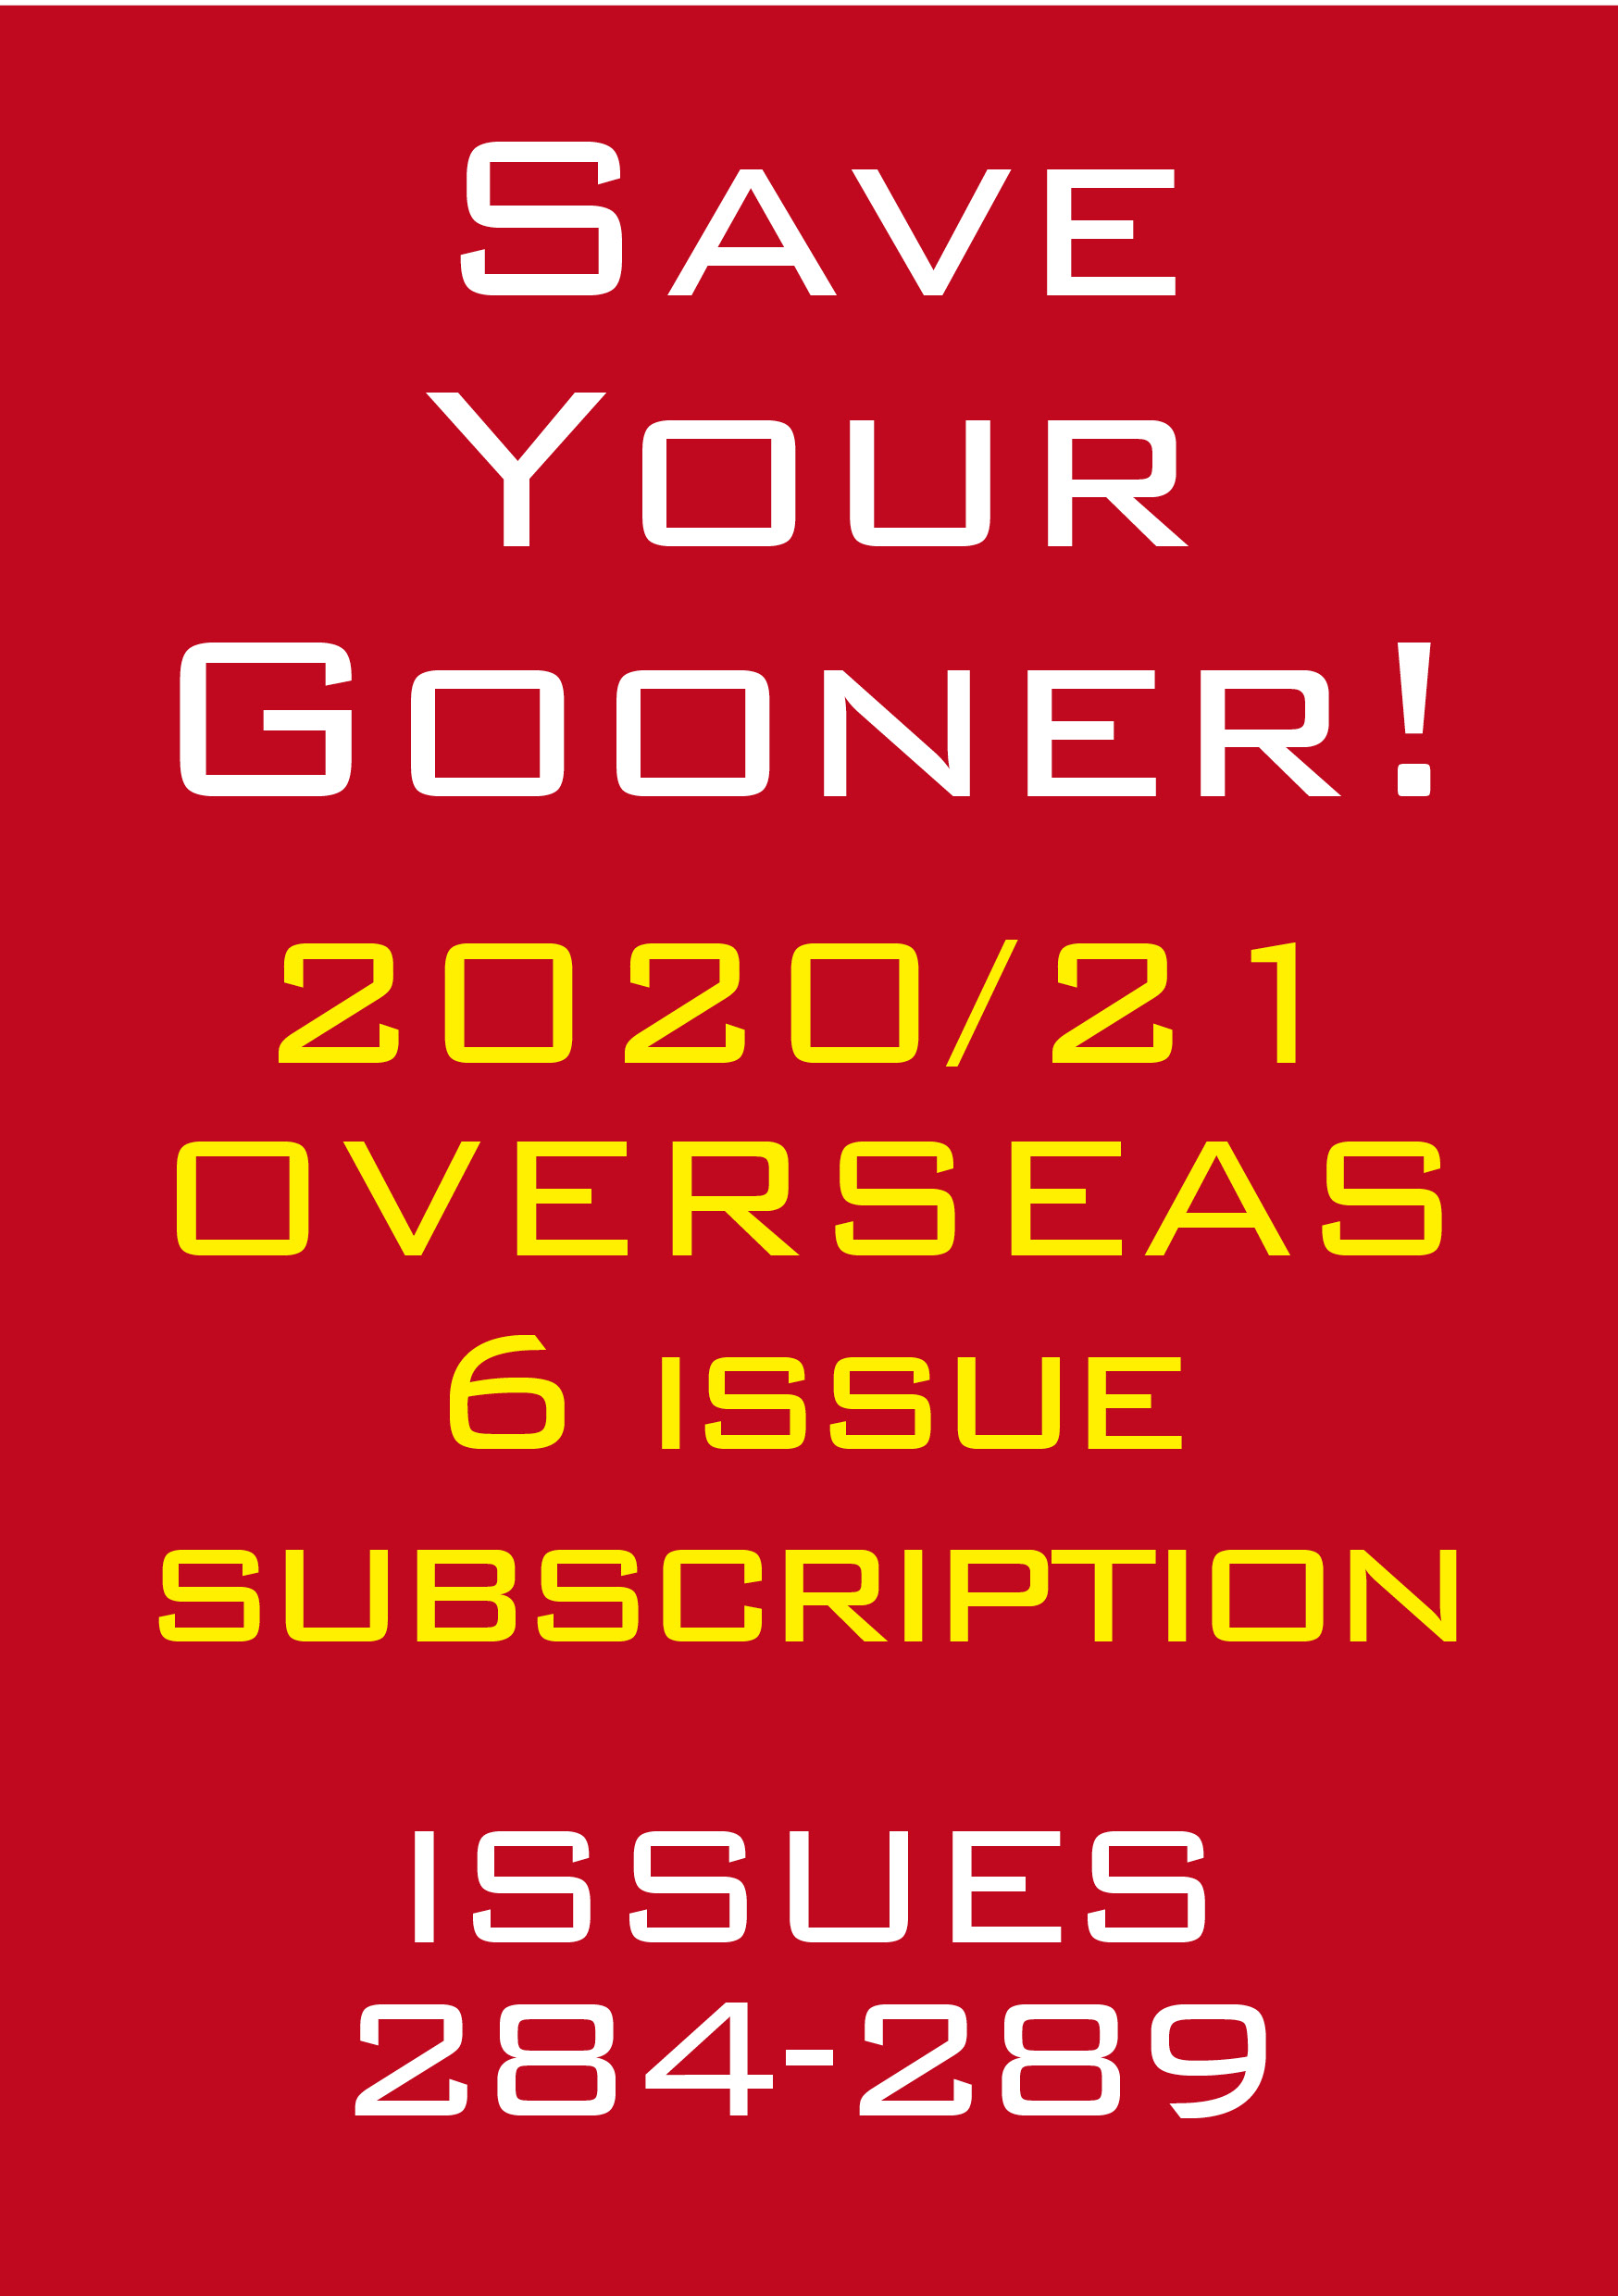 Save The Gooner 2020/21 subscription (Overseas)